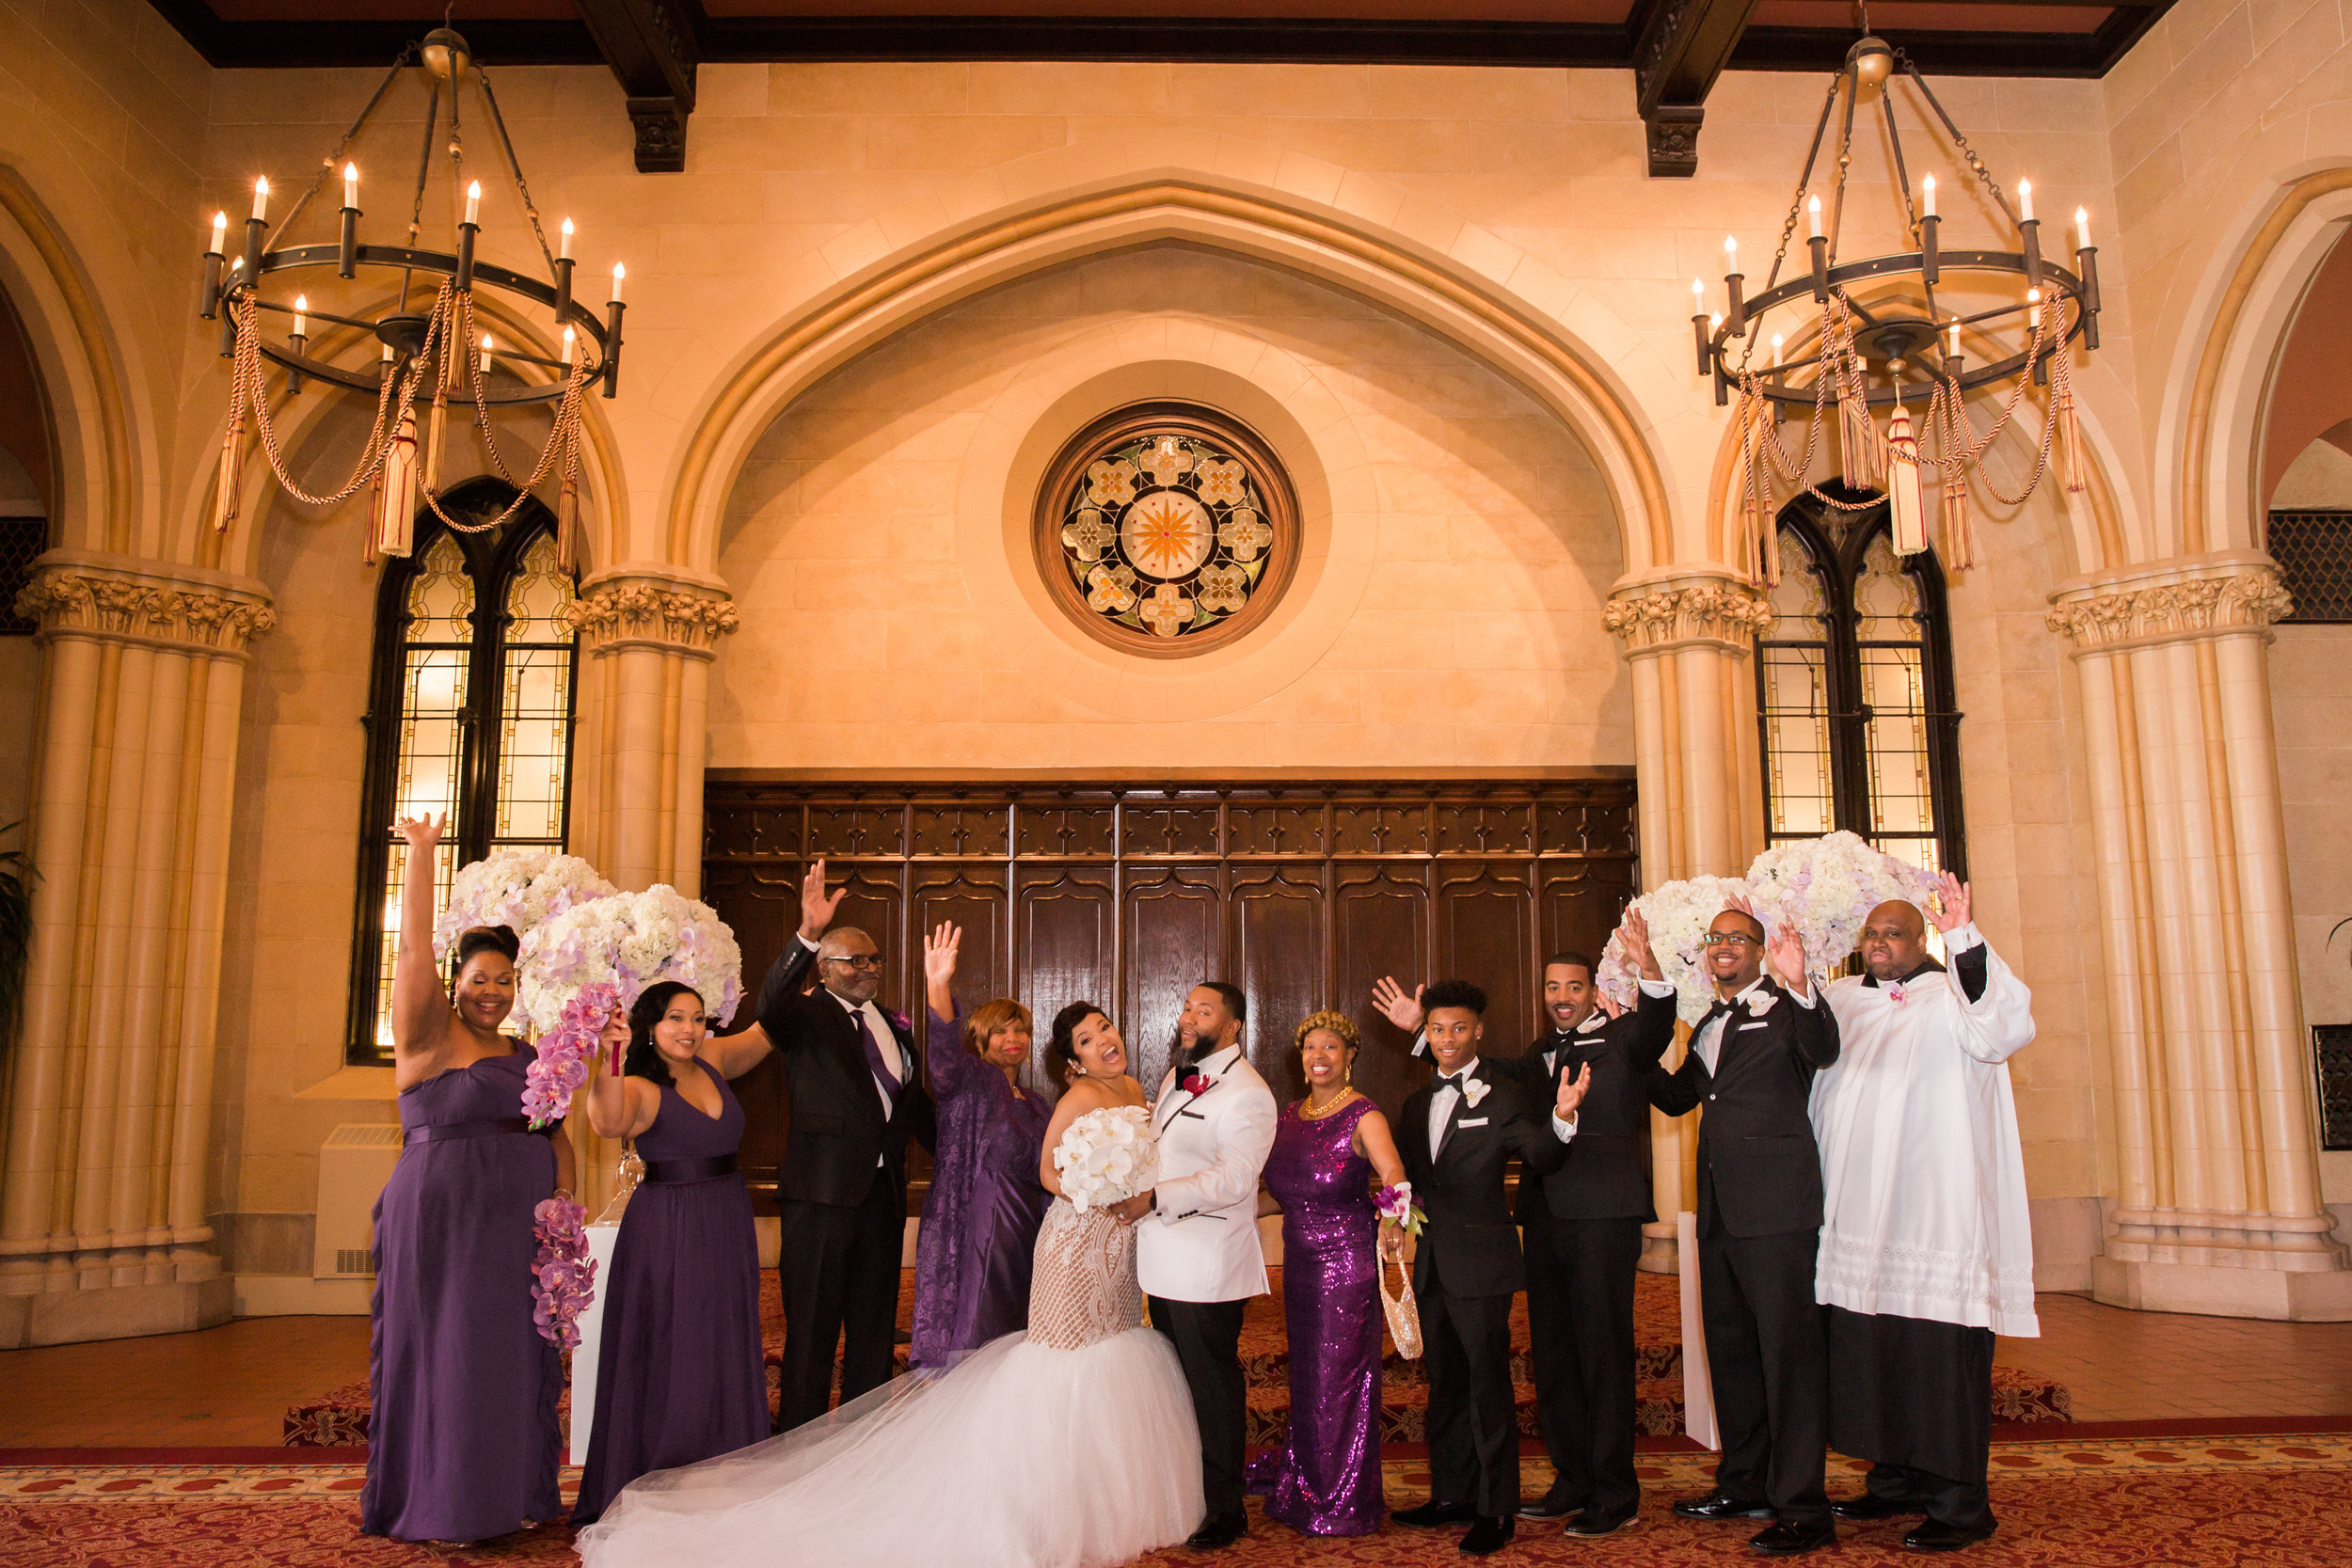 Best Classic Black Bride at The Grand Baltimore Maryland Husband and Wife Wedding Photographers Megapixels Media (52 of 98).jpg